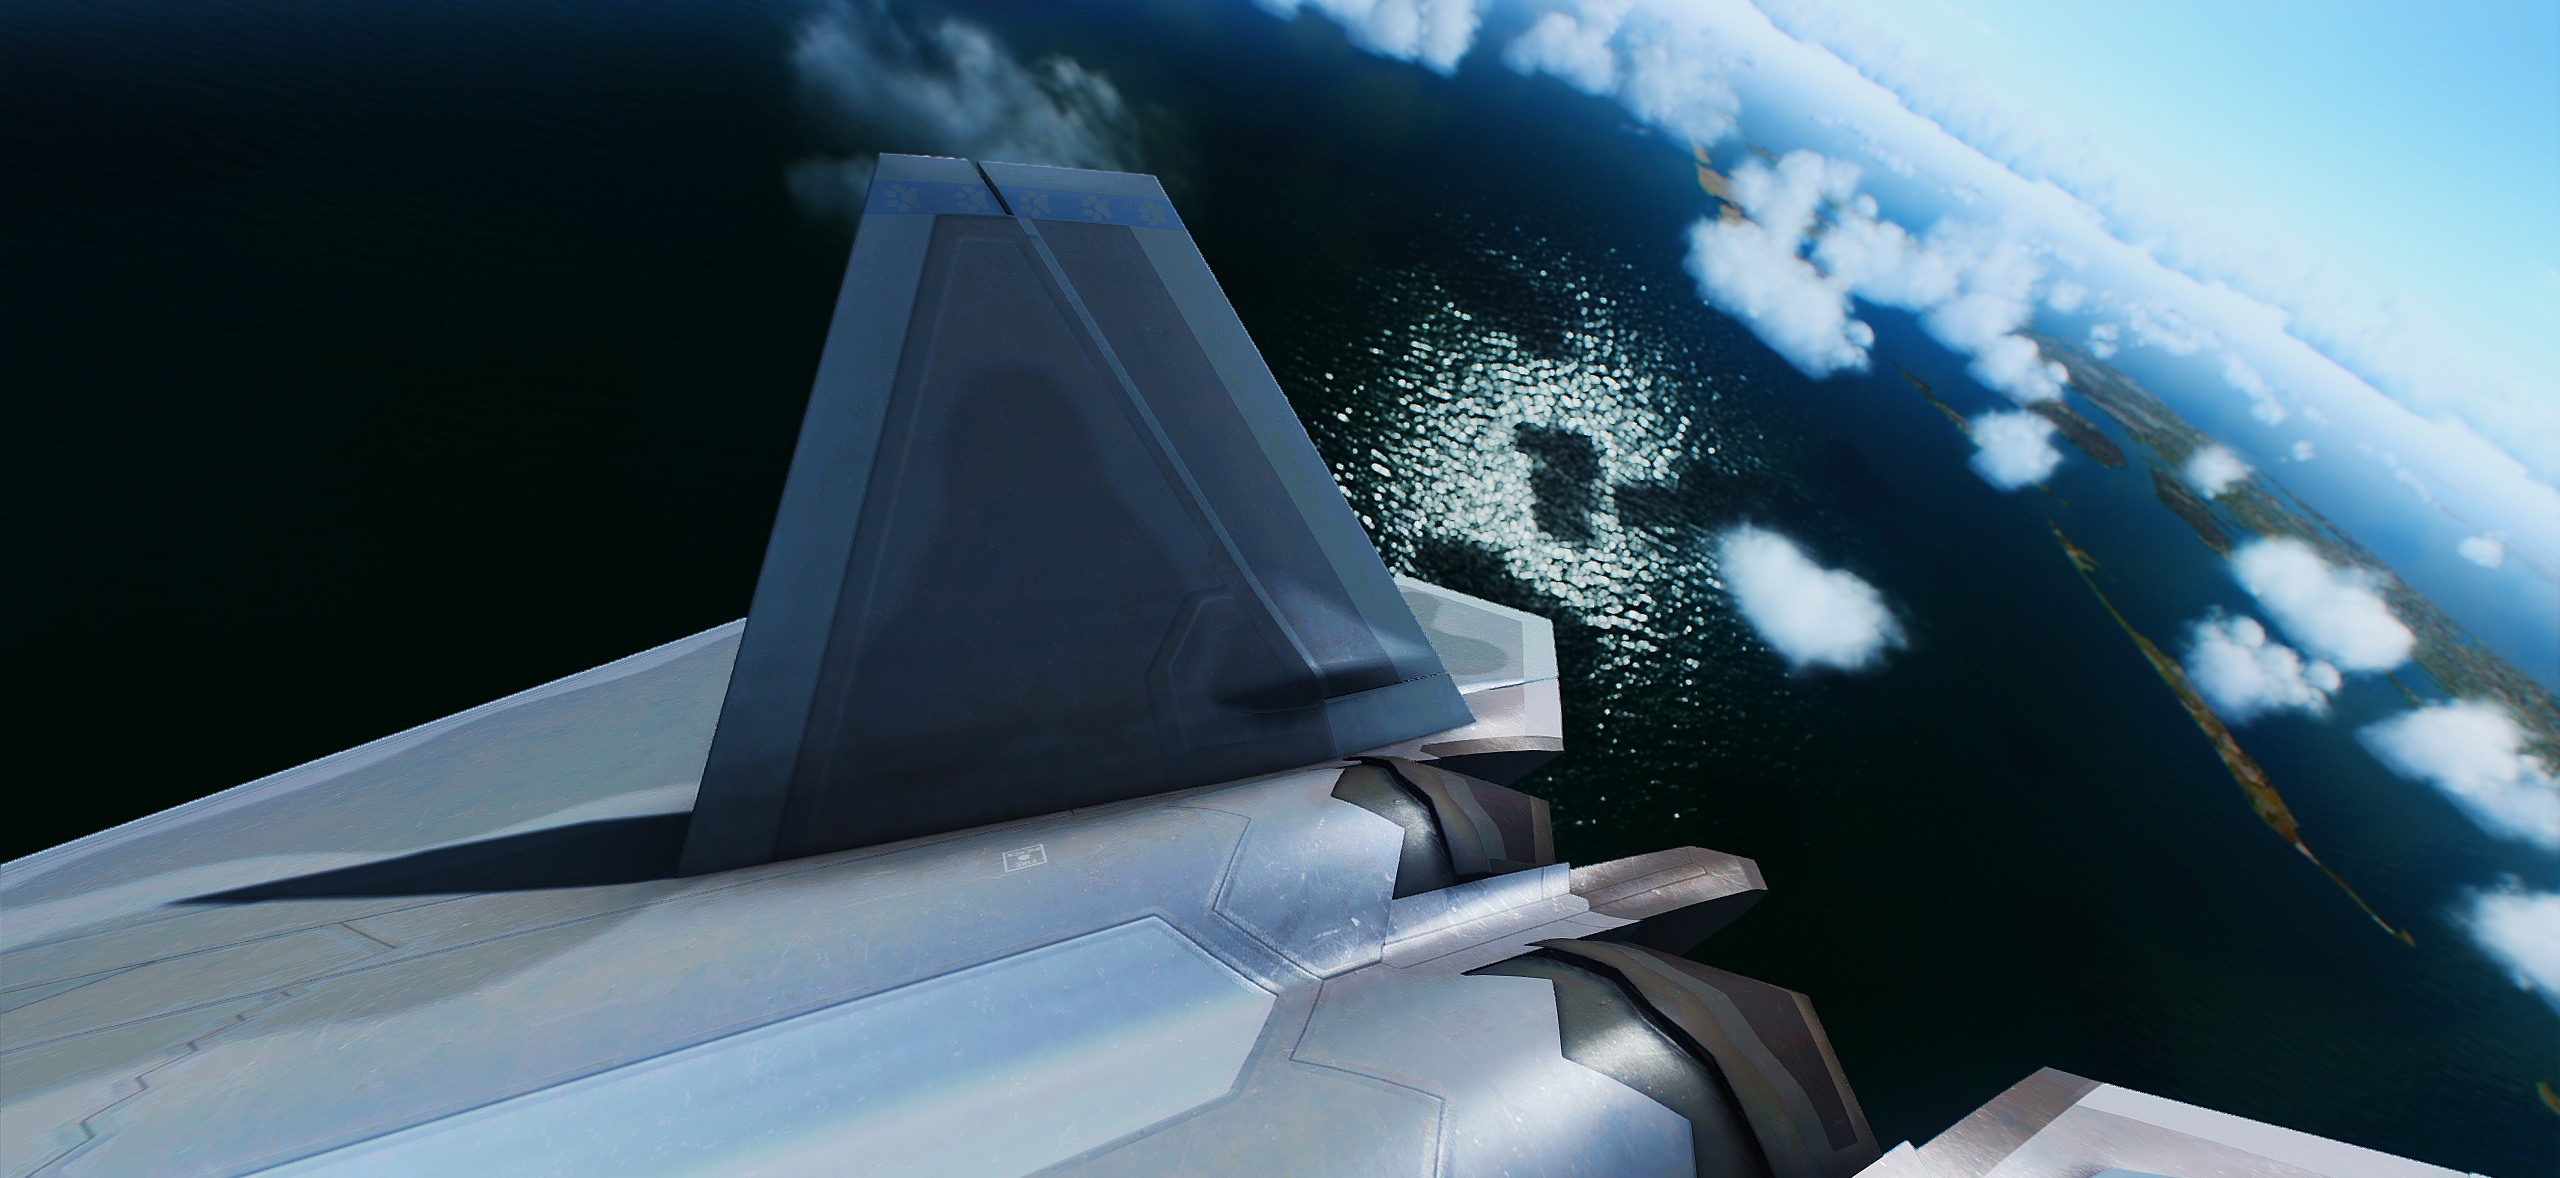 fsx%202015-07-05%2014-03-39-131.png?dl=0